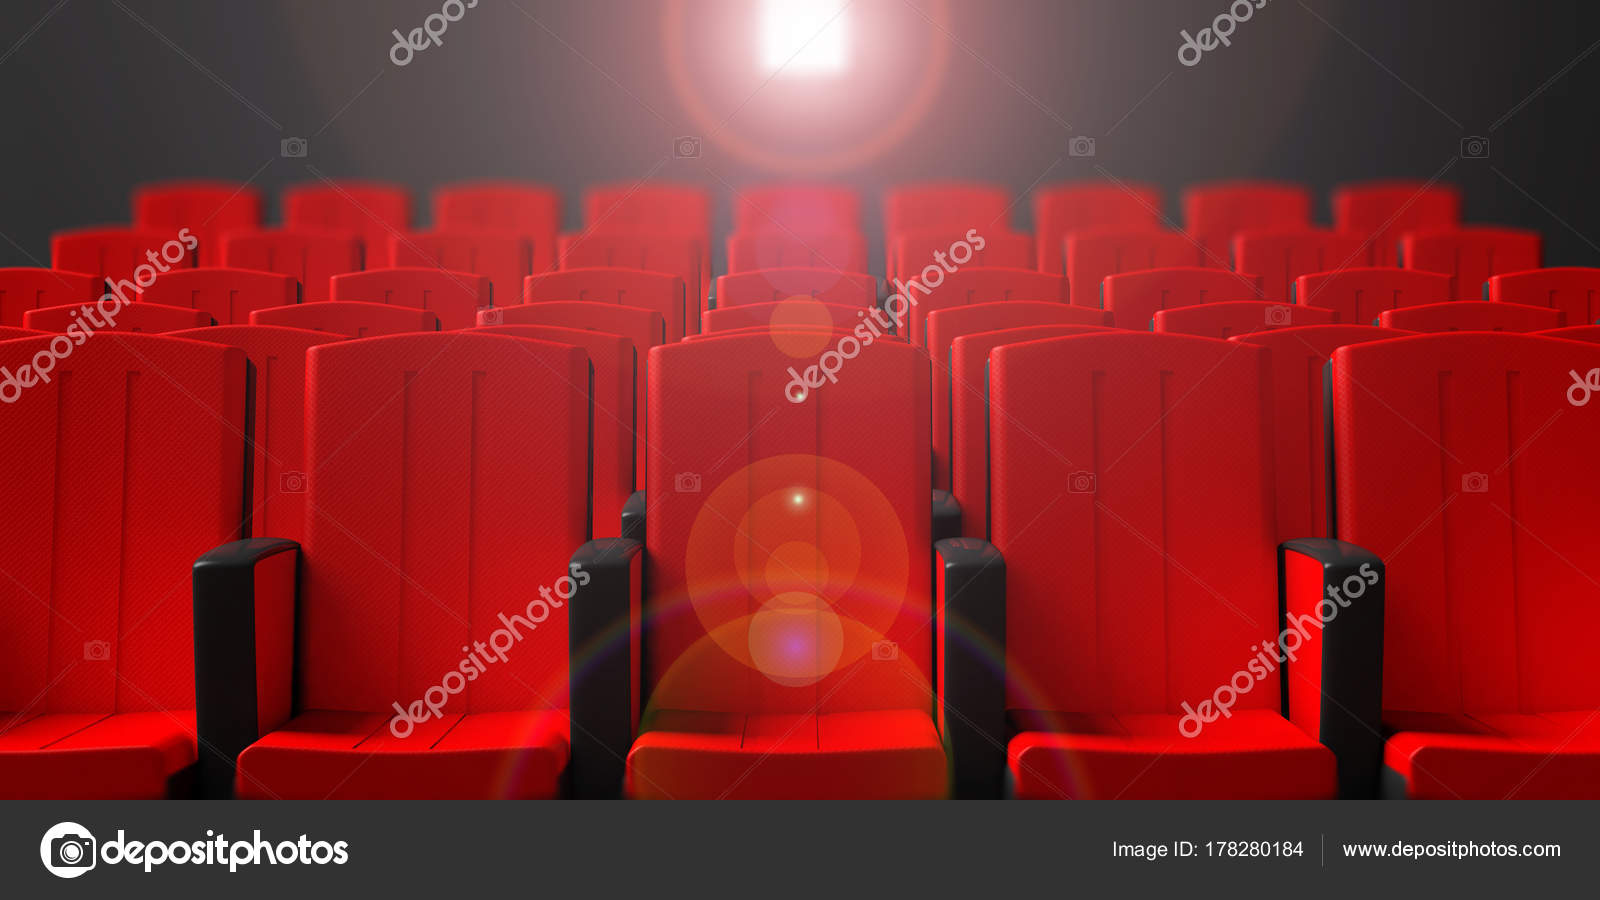 Picture of: Cinema Chairs On Dark Background With Projection Light Front View 3d Illustration Stock Photo C Gioiak2 178280184